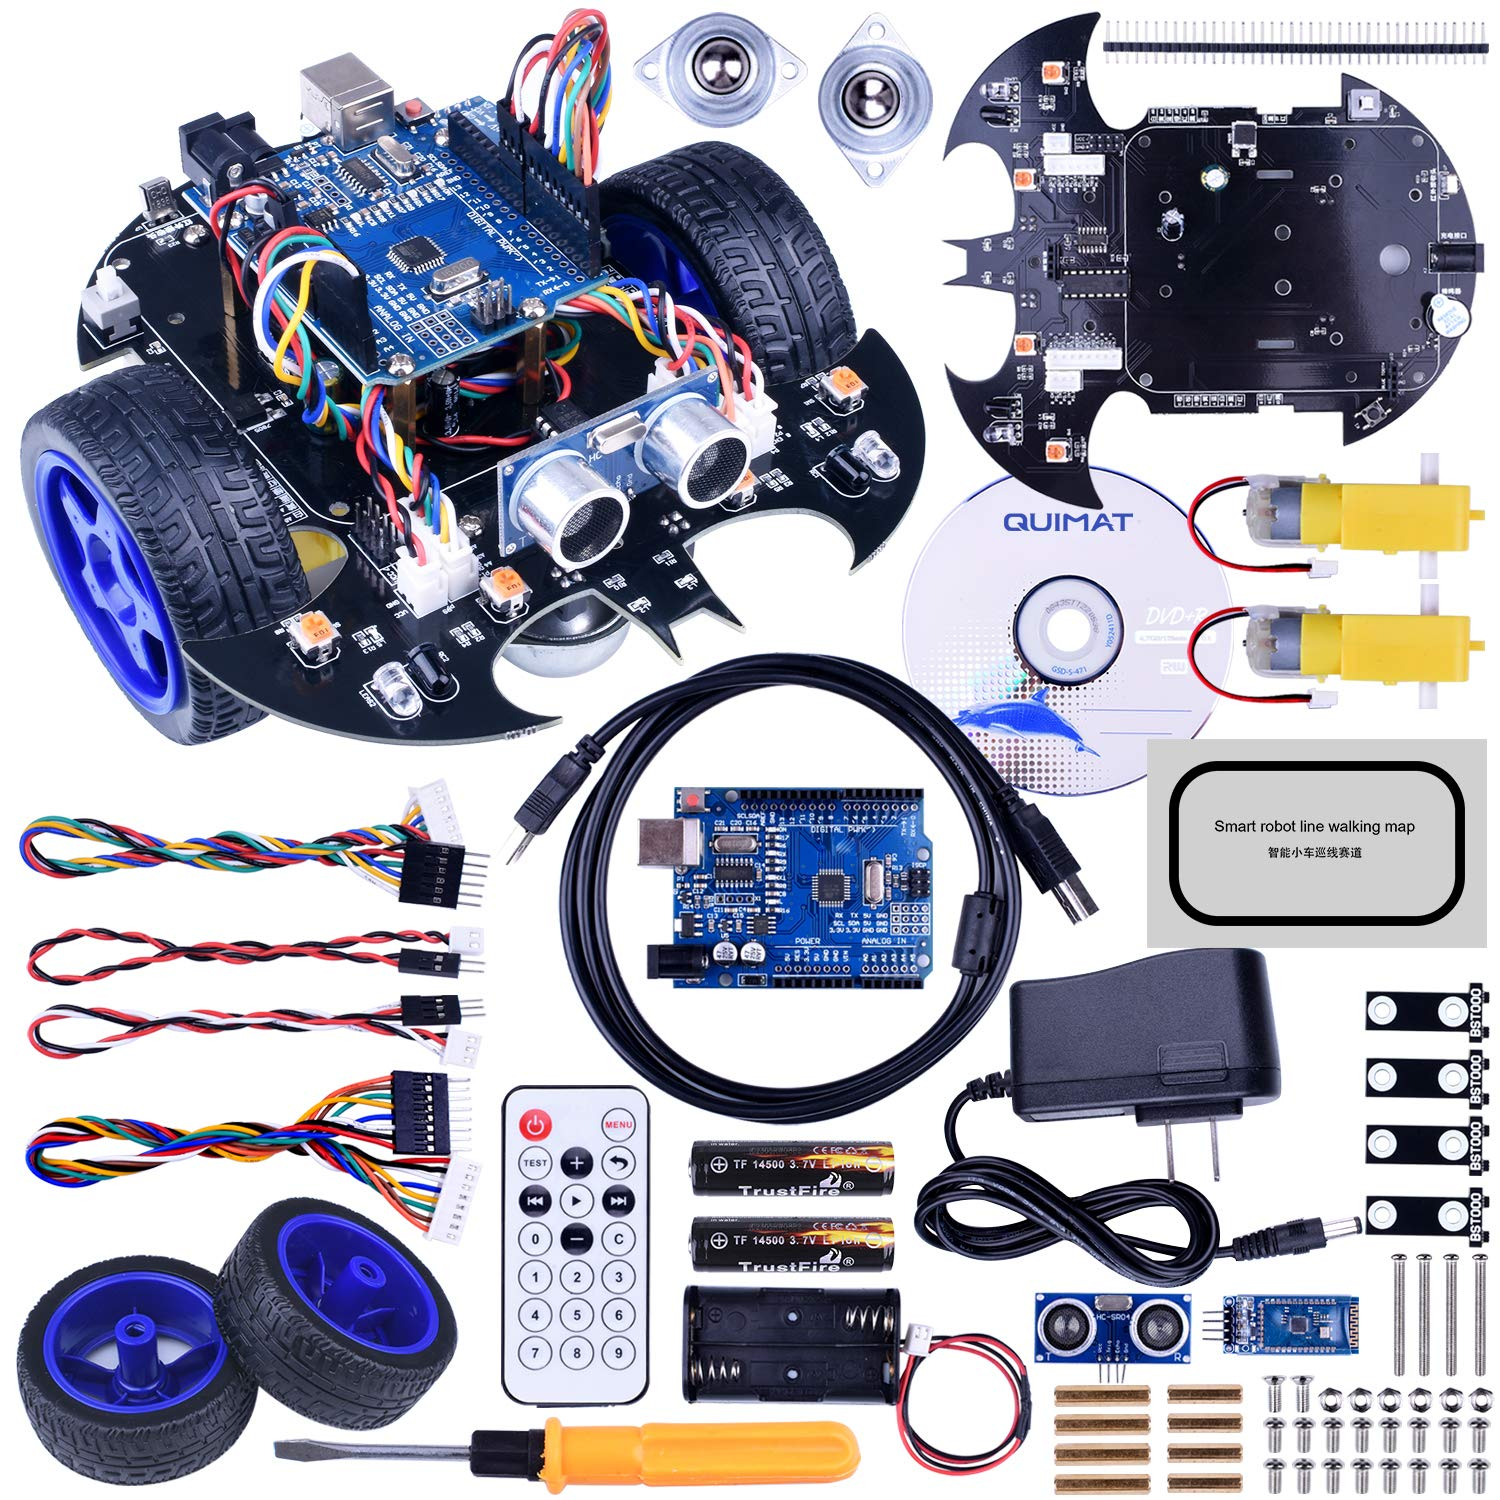 Quimat Smart Robot Car Kit competible with ArduinoIDE Projects, Includes Two-Wheel Drives,Tracking Module,Ultrasonic Sensor and Bluetooth Remote Control, Intelligent Car for Teens and Adult by Quimat